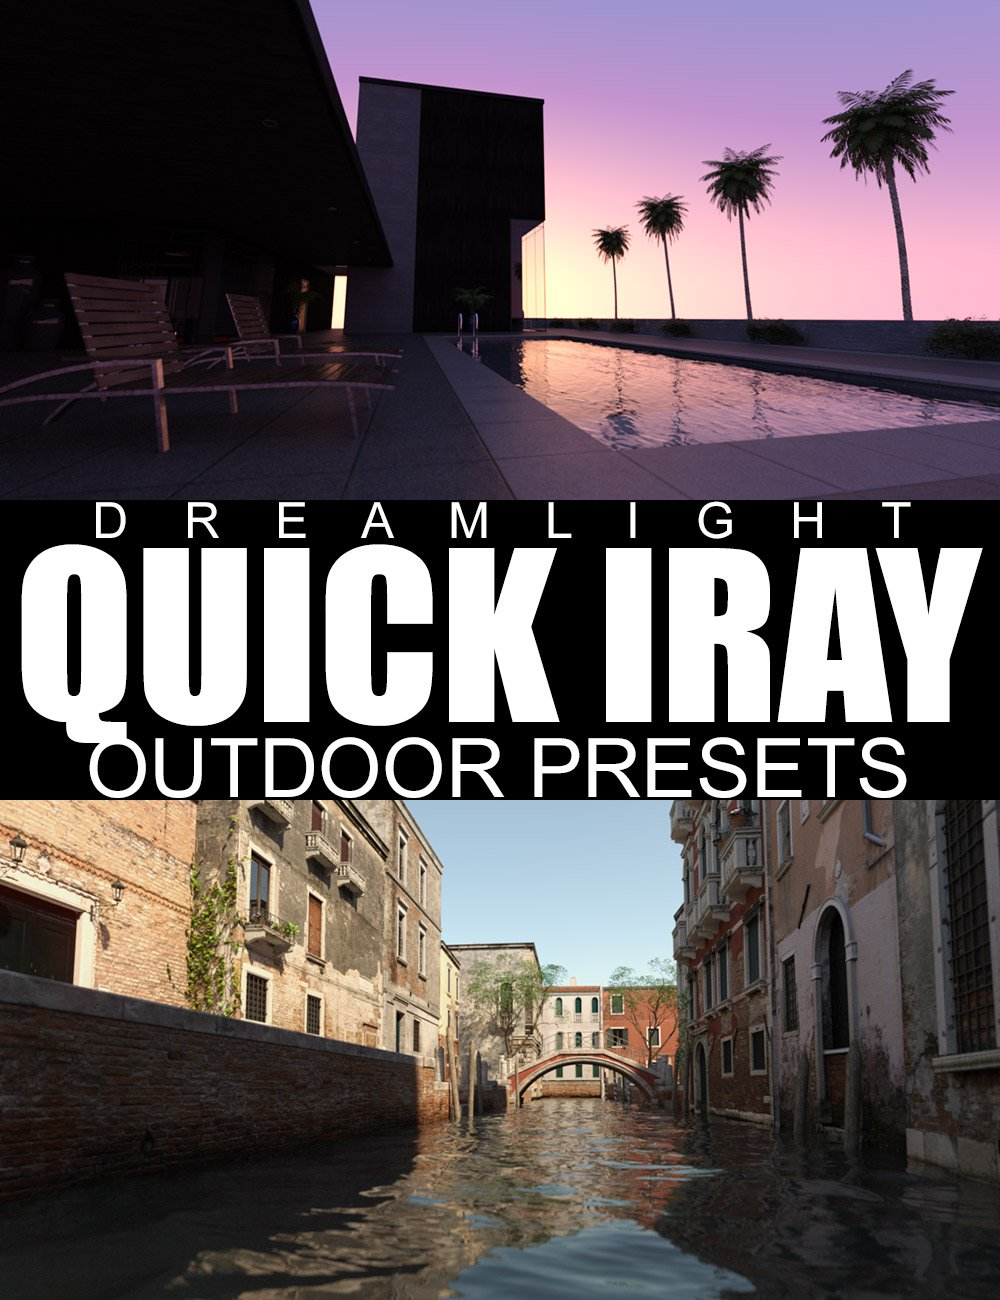 Quick Iray Outdoor Presets by: Dreamlight, 3D Models by Daz 3D